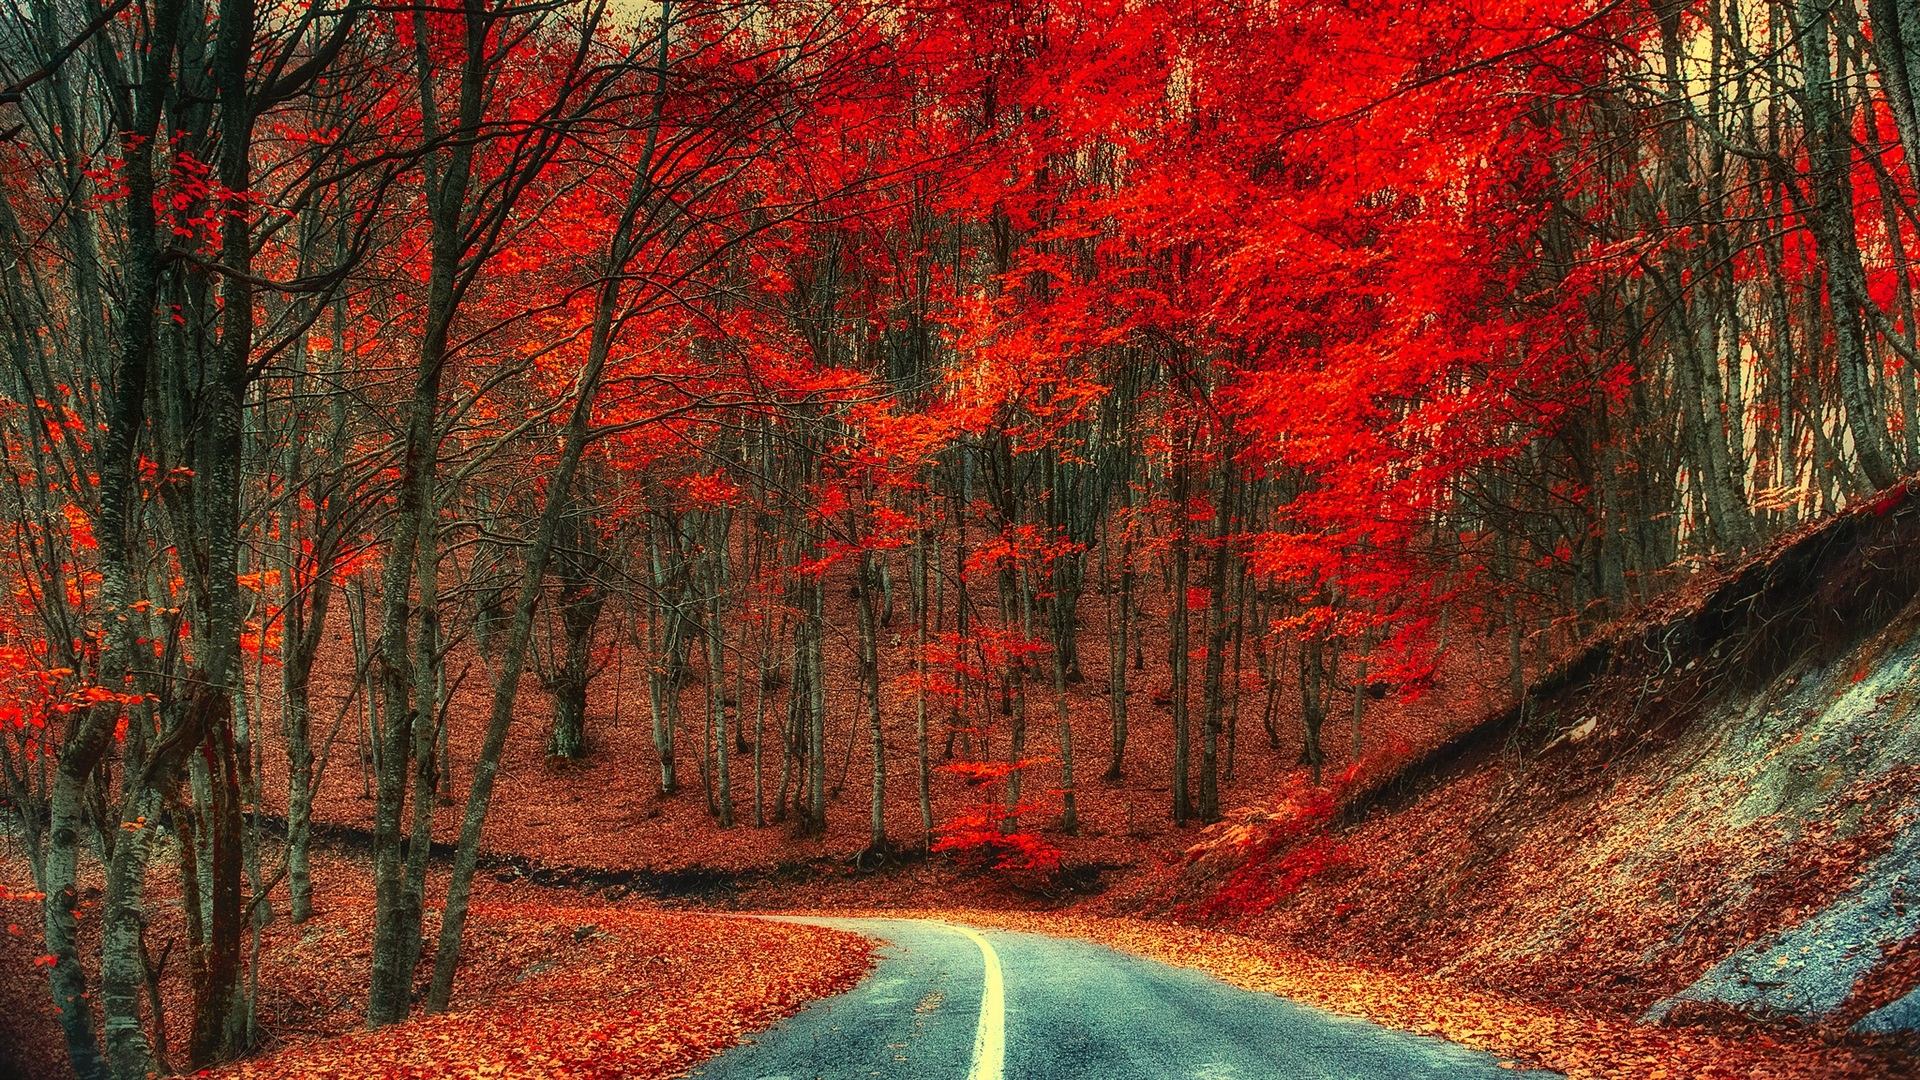 Fall Leaves Hd Wallpapers 1080p Autumn Road Trees Foliage Red Leaves Wallpaper